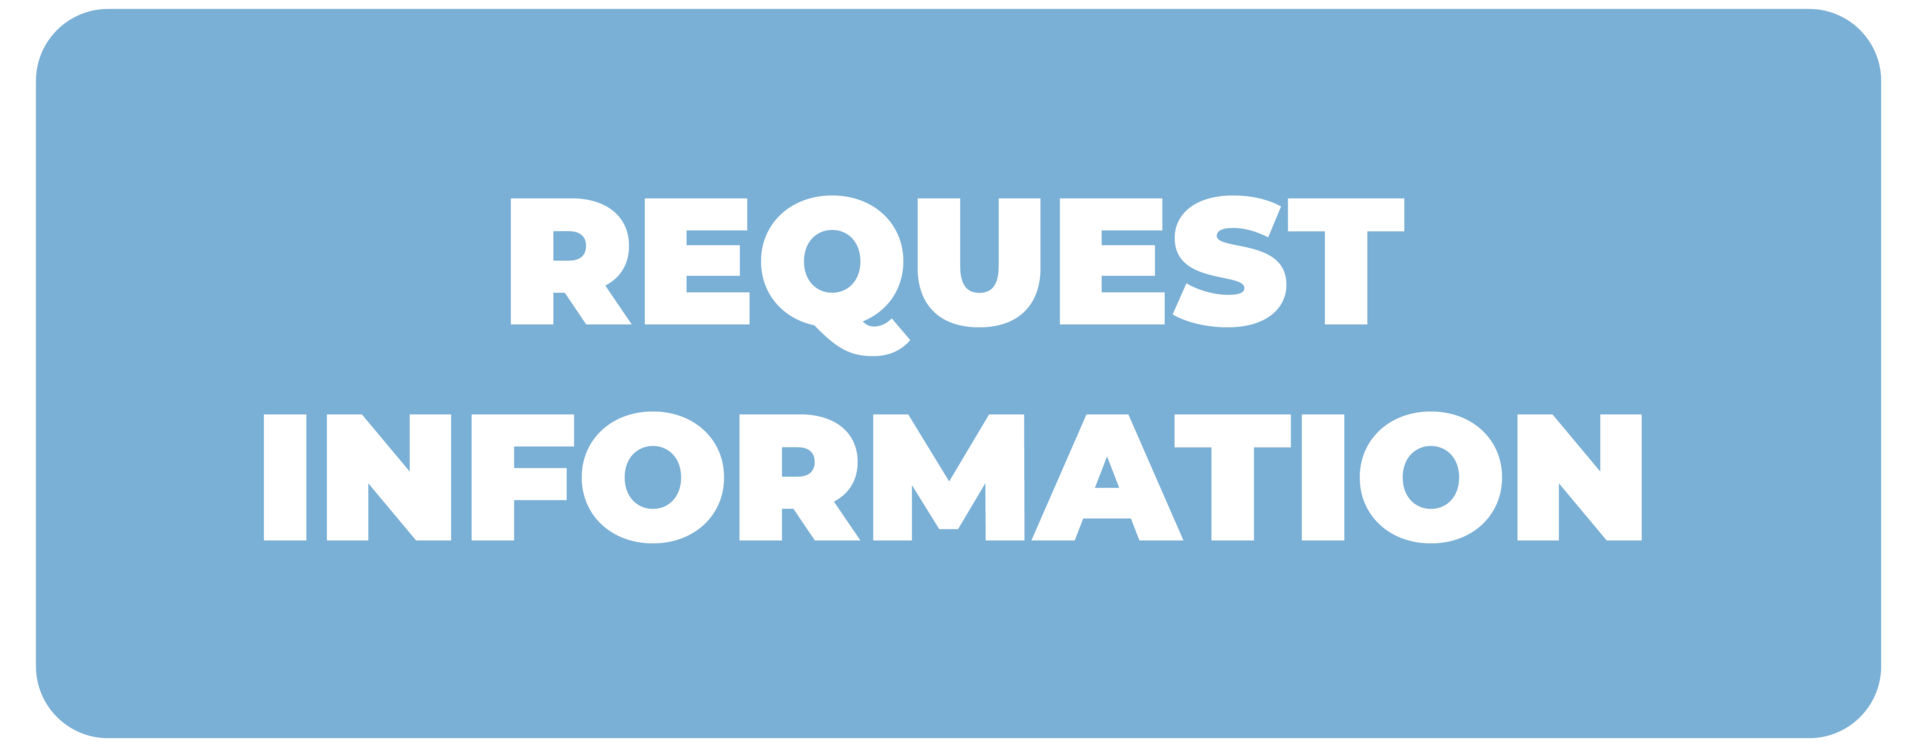 Request Information about St. Timothy's School